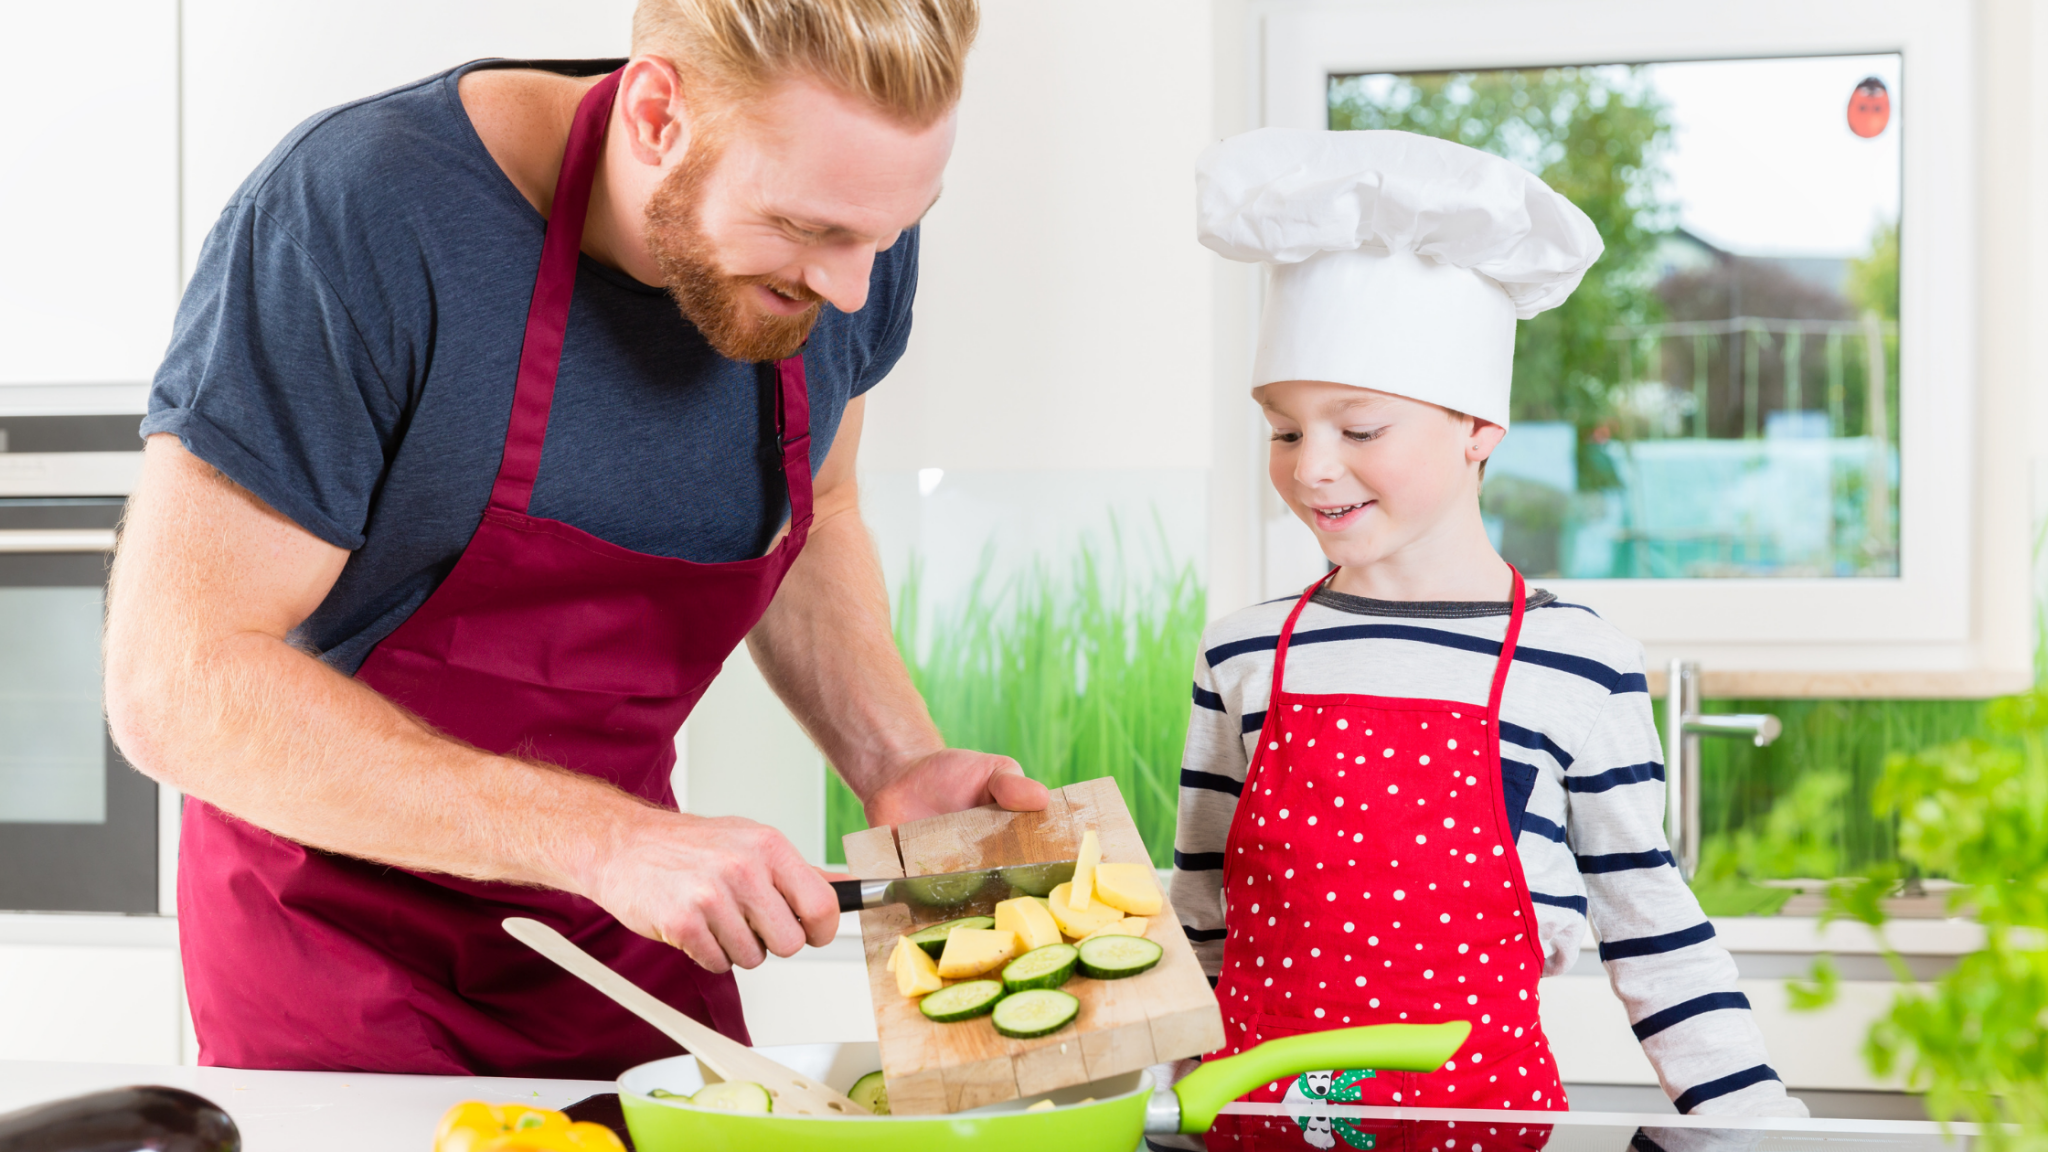 A father embracing changes in their family's diet to reduce his son's ADHD symptoms.